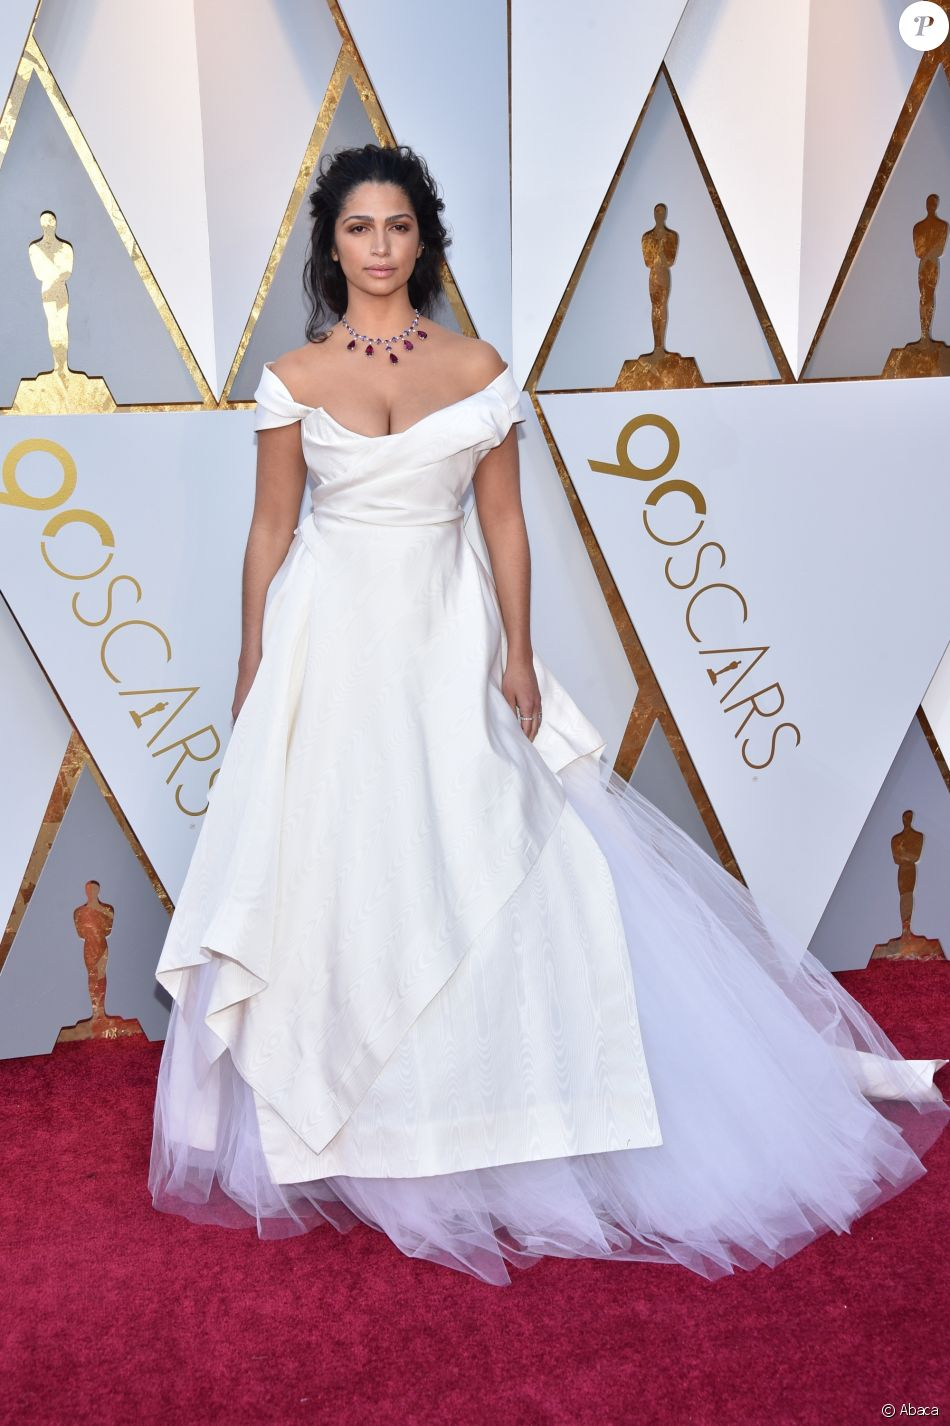 The beautiful Camilla Alves Mcconaughey in a Vivienne Westwood design made from archival silk that is ethically and sustainably crafted